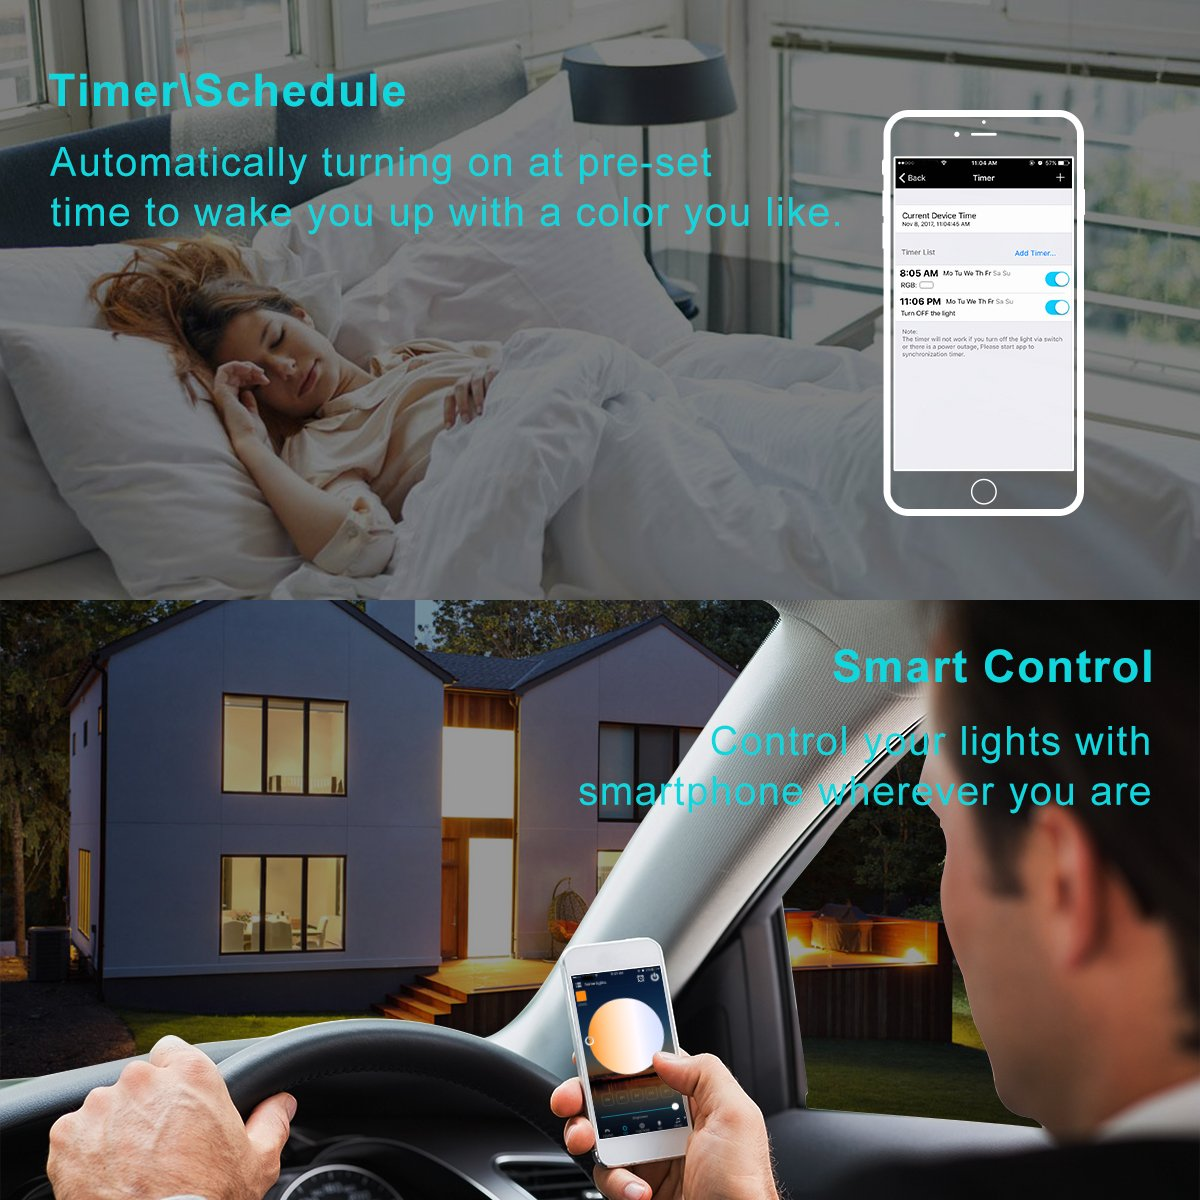 YiHong WiFi LED Controller for Strip Lights Smart Controller with Remote for LED RGB Light Strip Compatible with Alexa Google Home by YIHONG (Image #7)